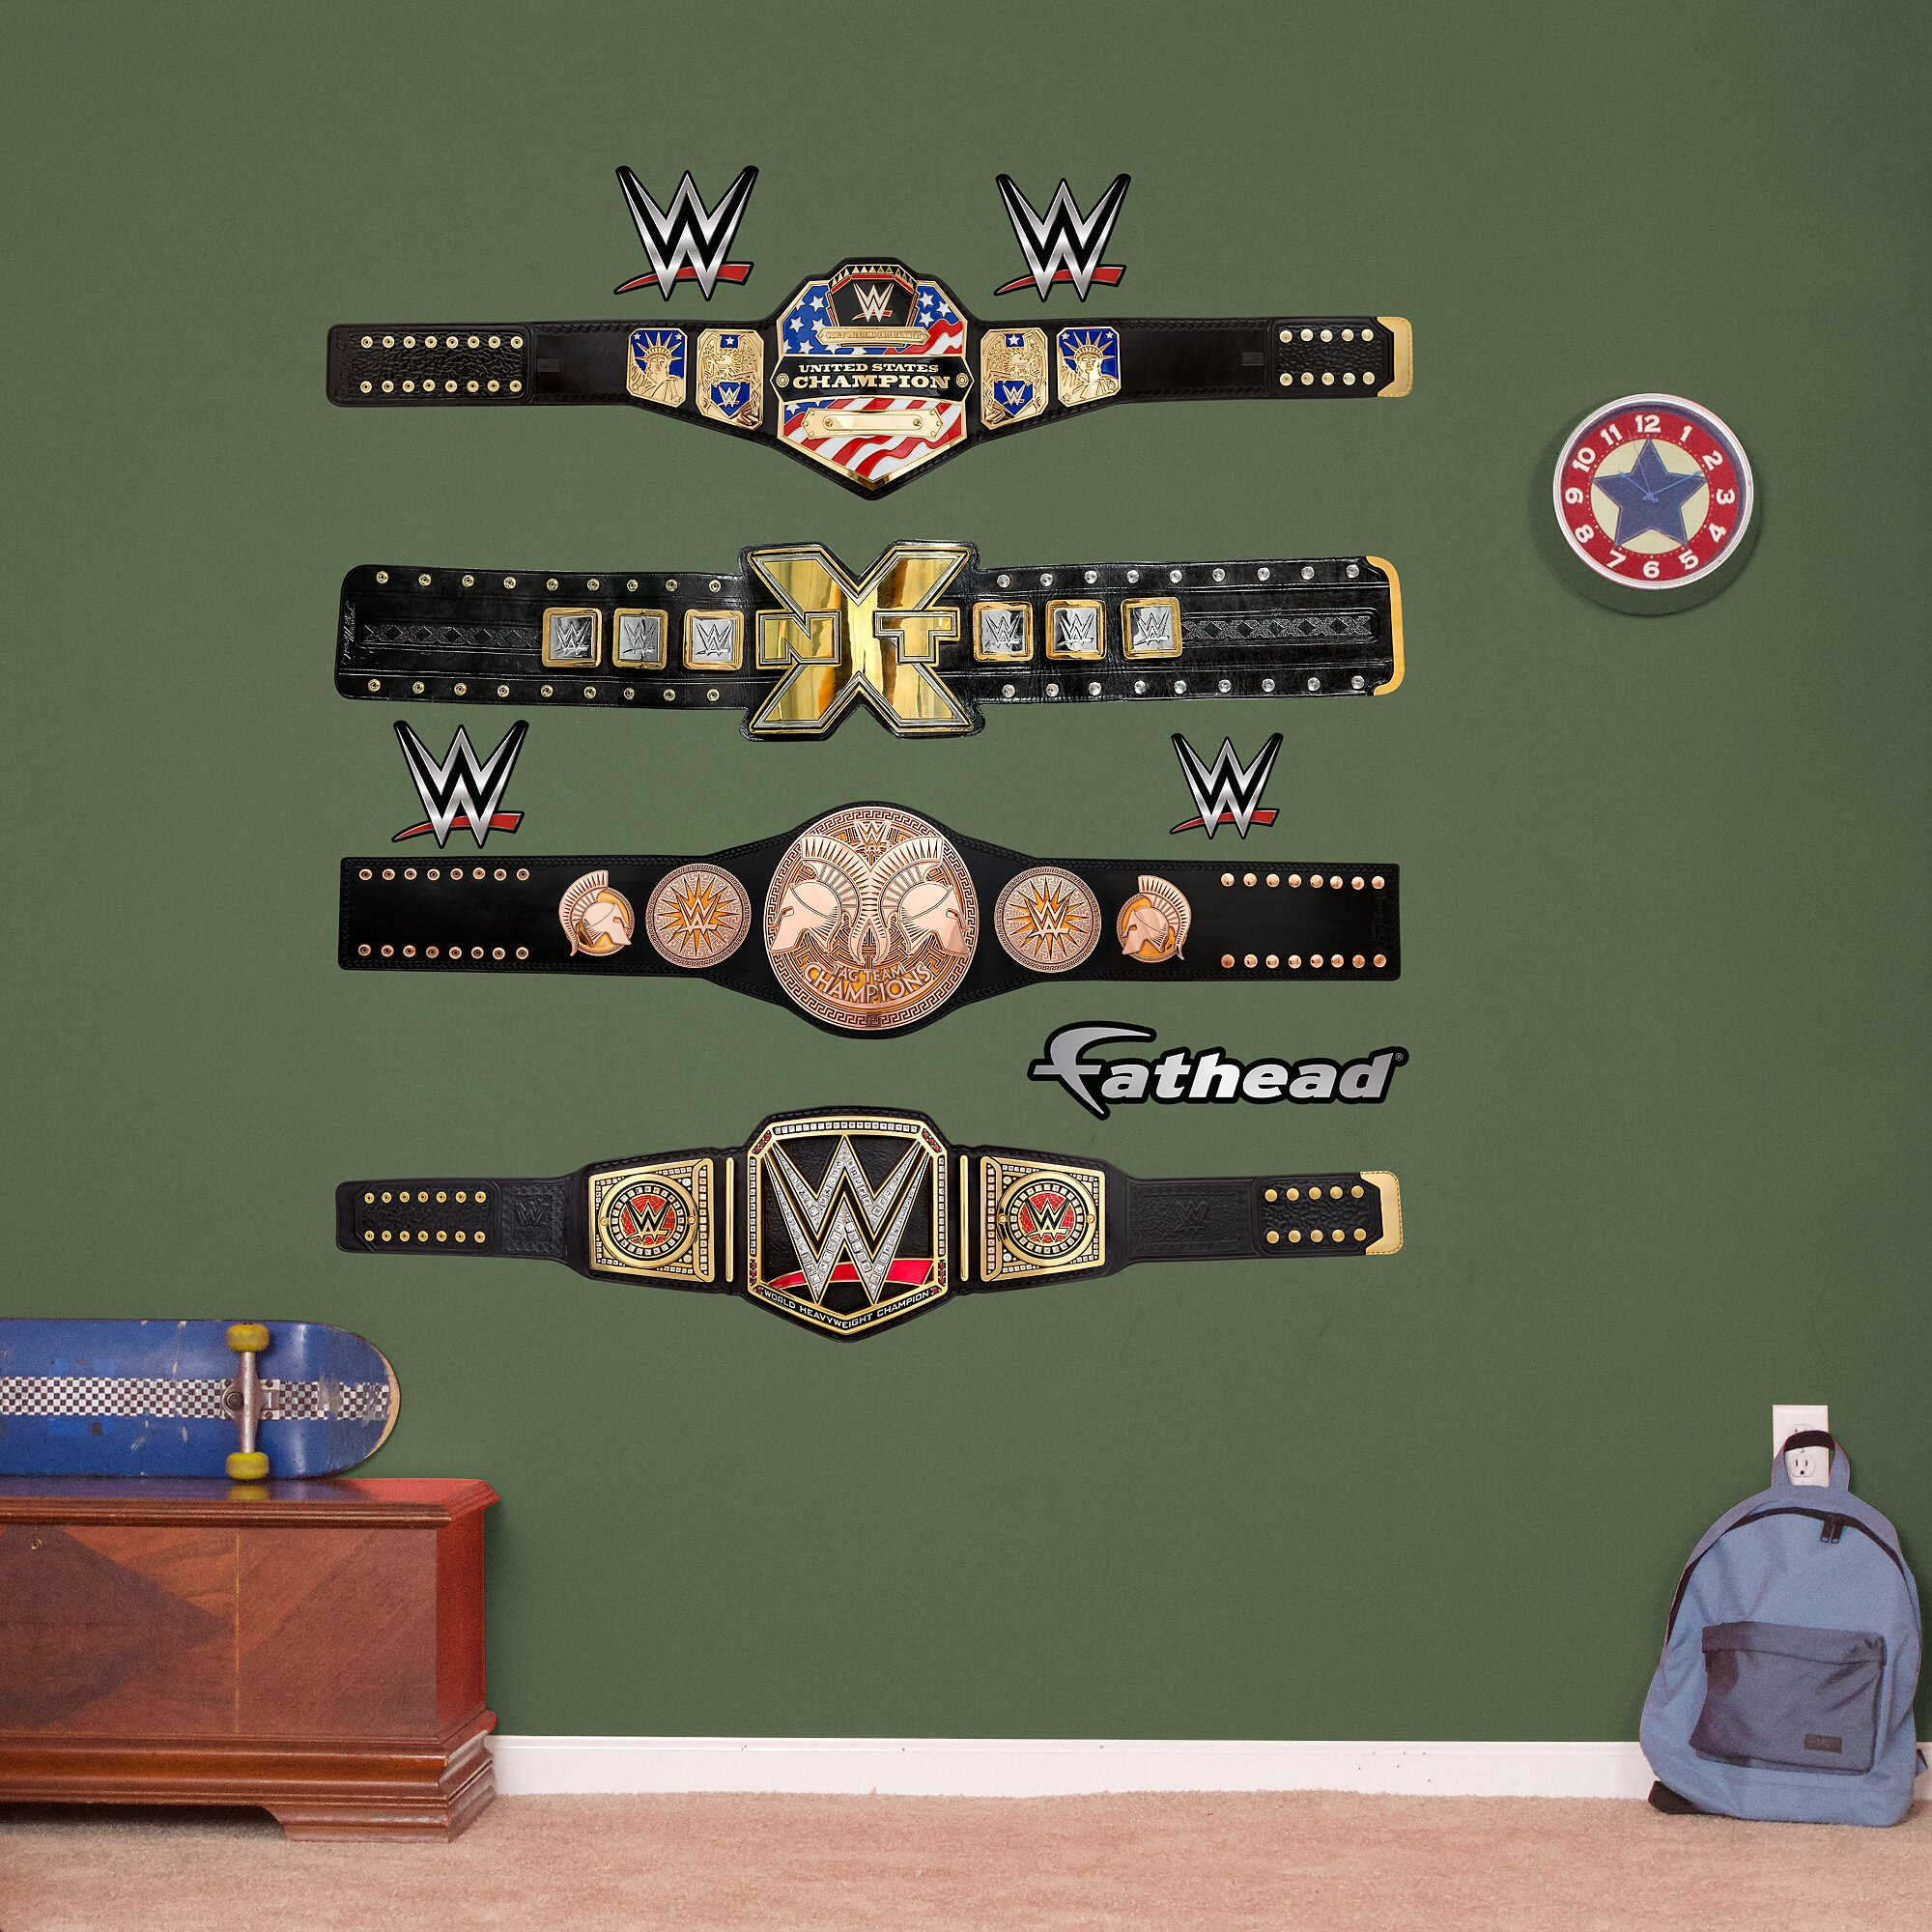 Wwe title belts peel and stick wall decal wayfair for Wwe bathroom decor